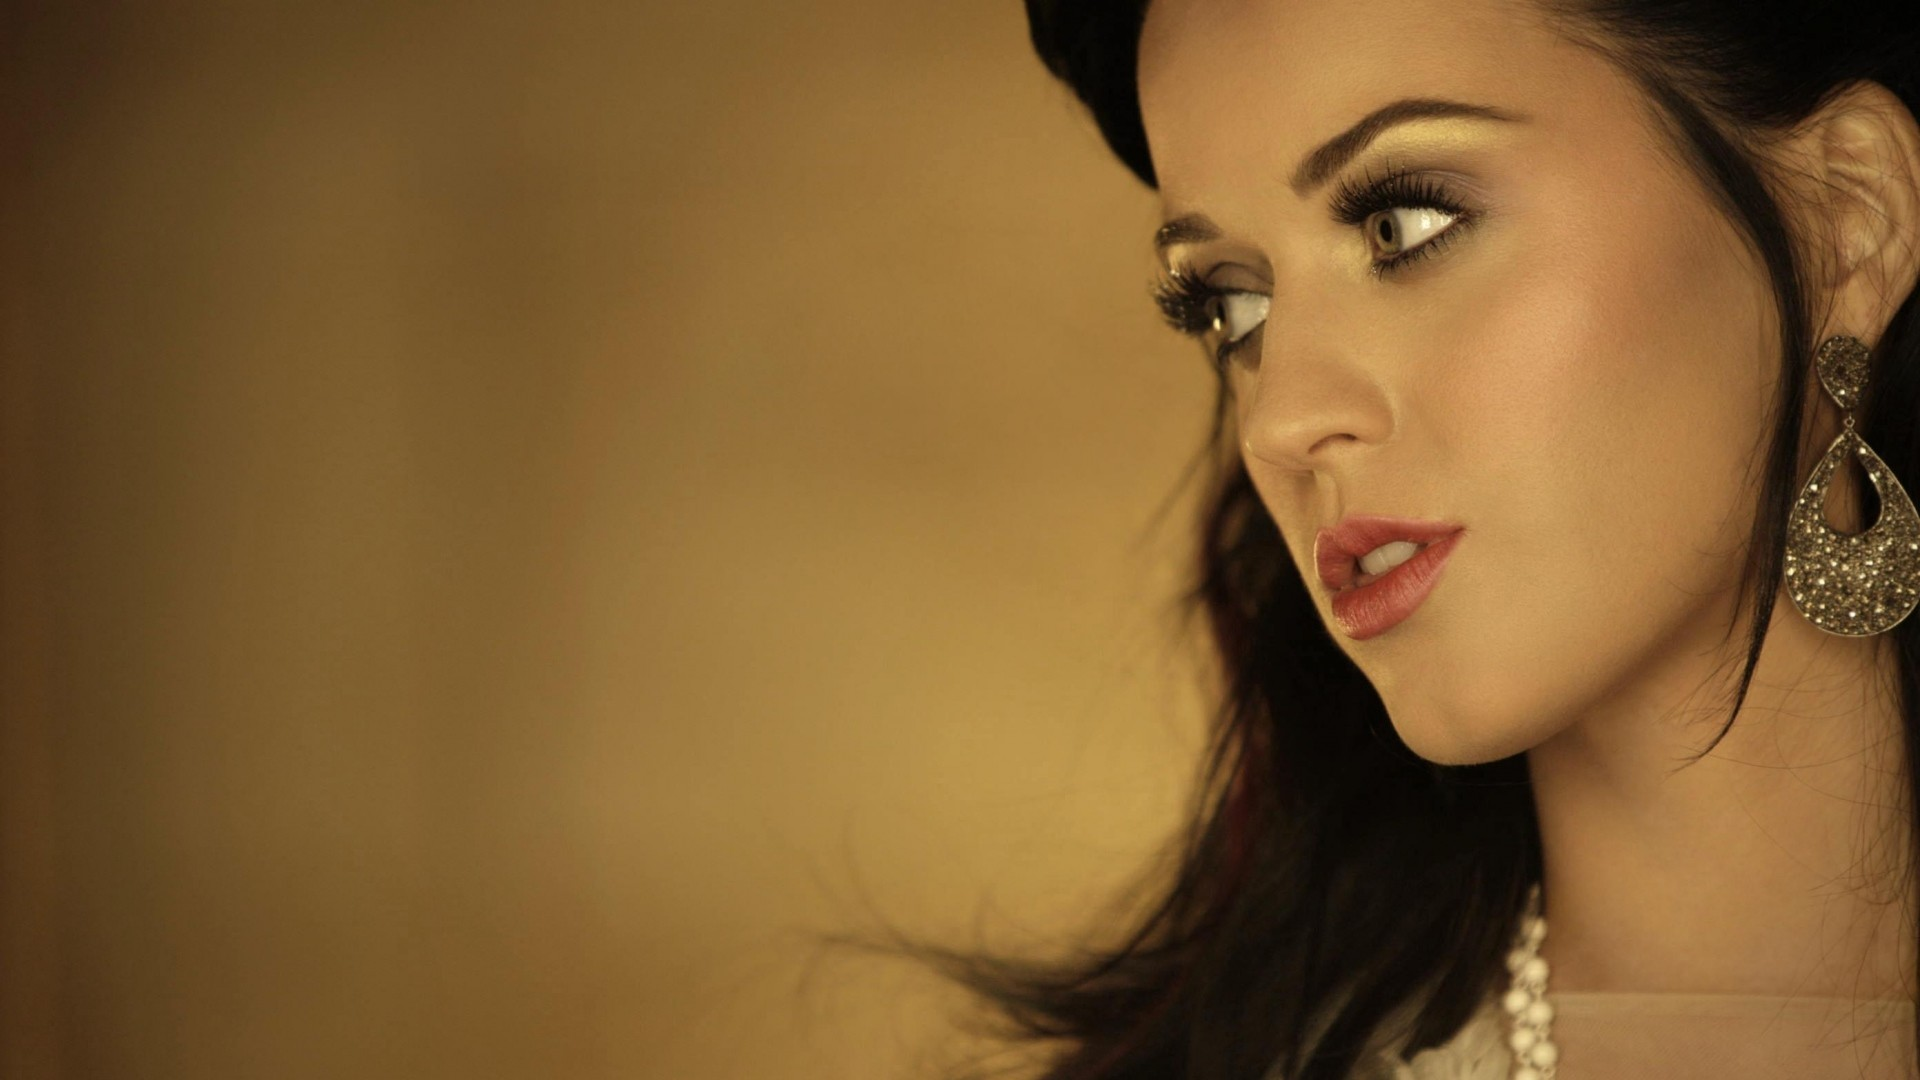 Preview wallpaper katy perry, girl, singer, look 1920×1080